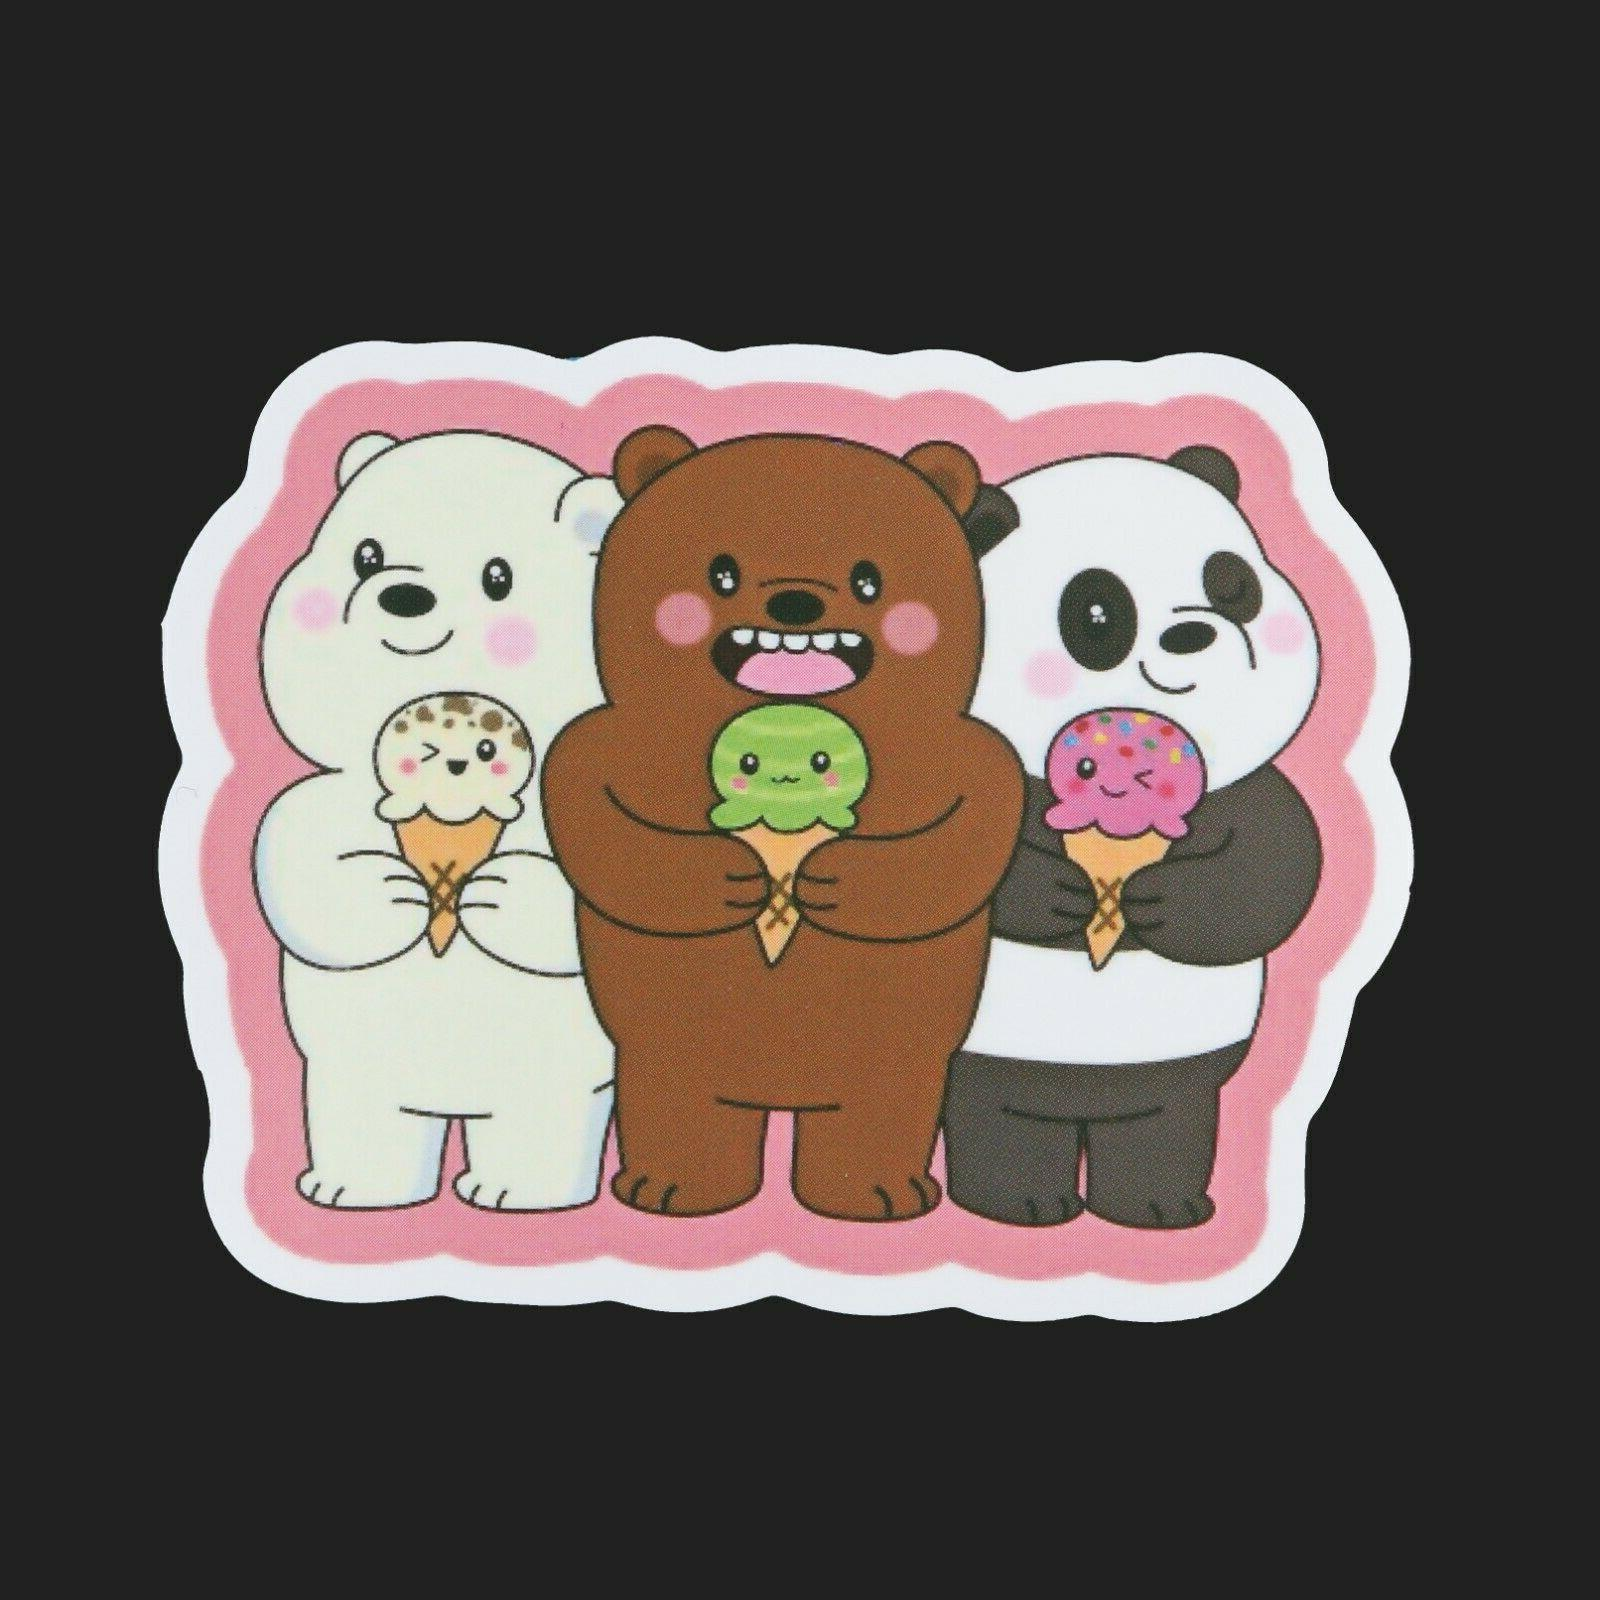 100pcs We Stickers Pack, Bear Stickers,